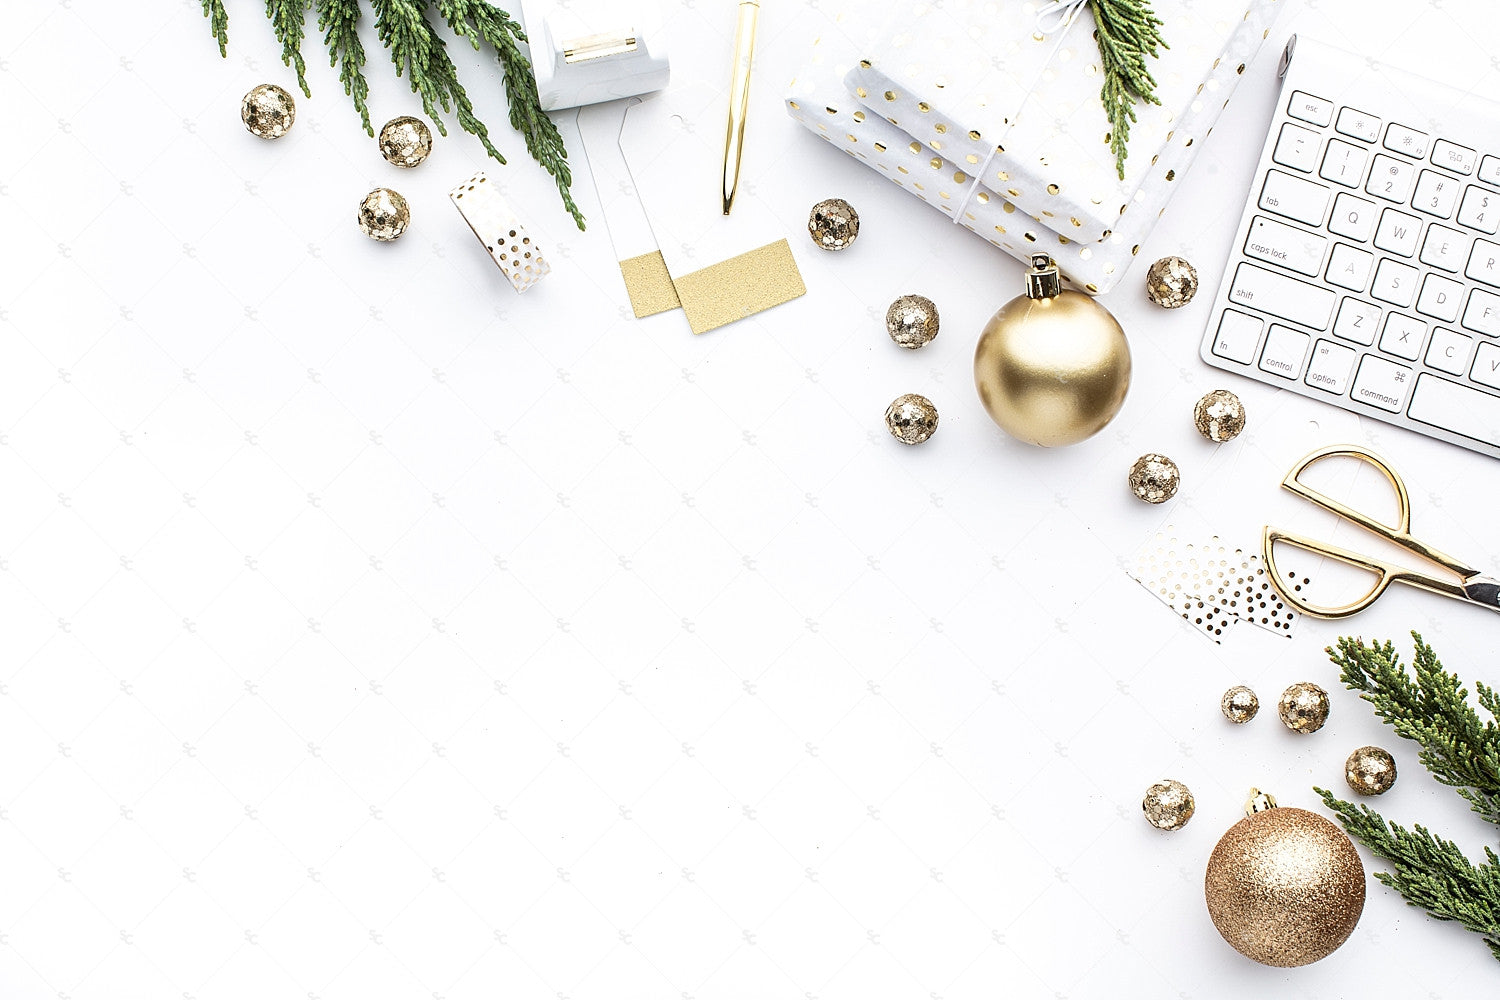 Holiday Styled Desk Stock for Creatives from the SC Stockshop